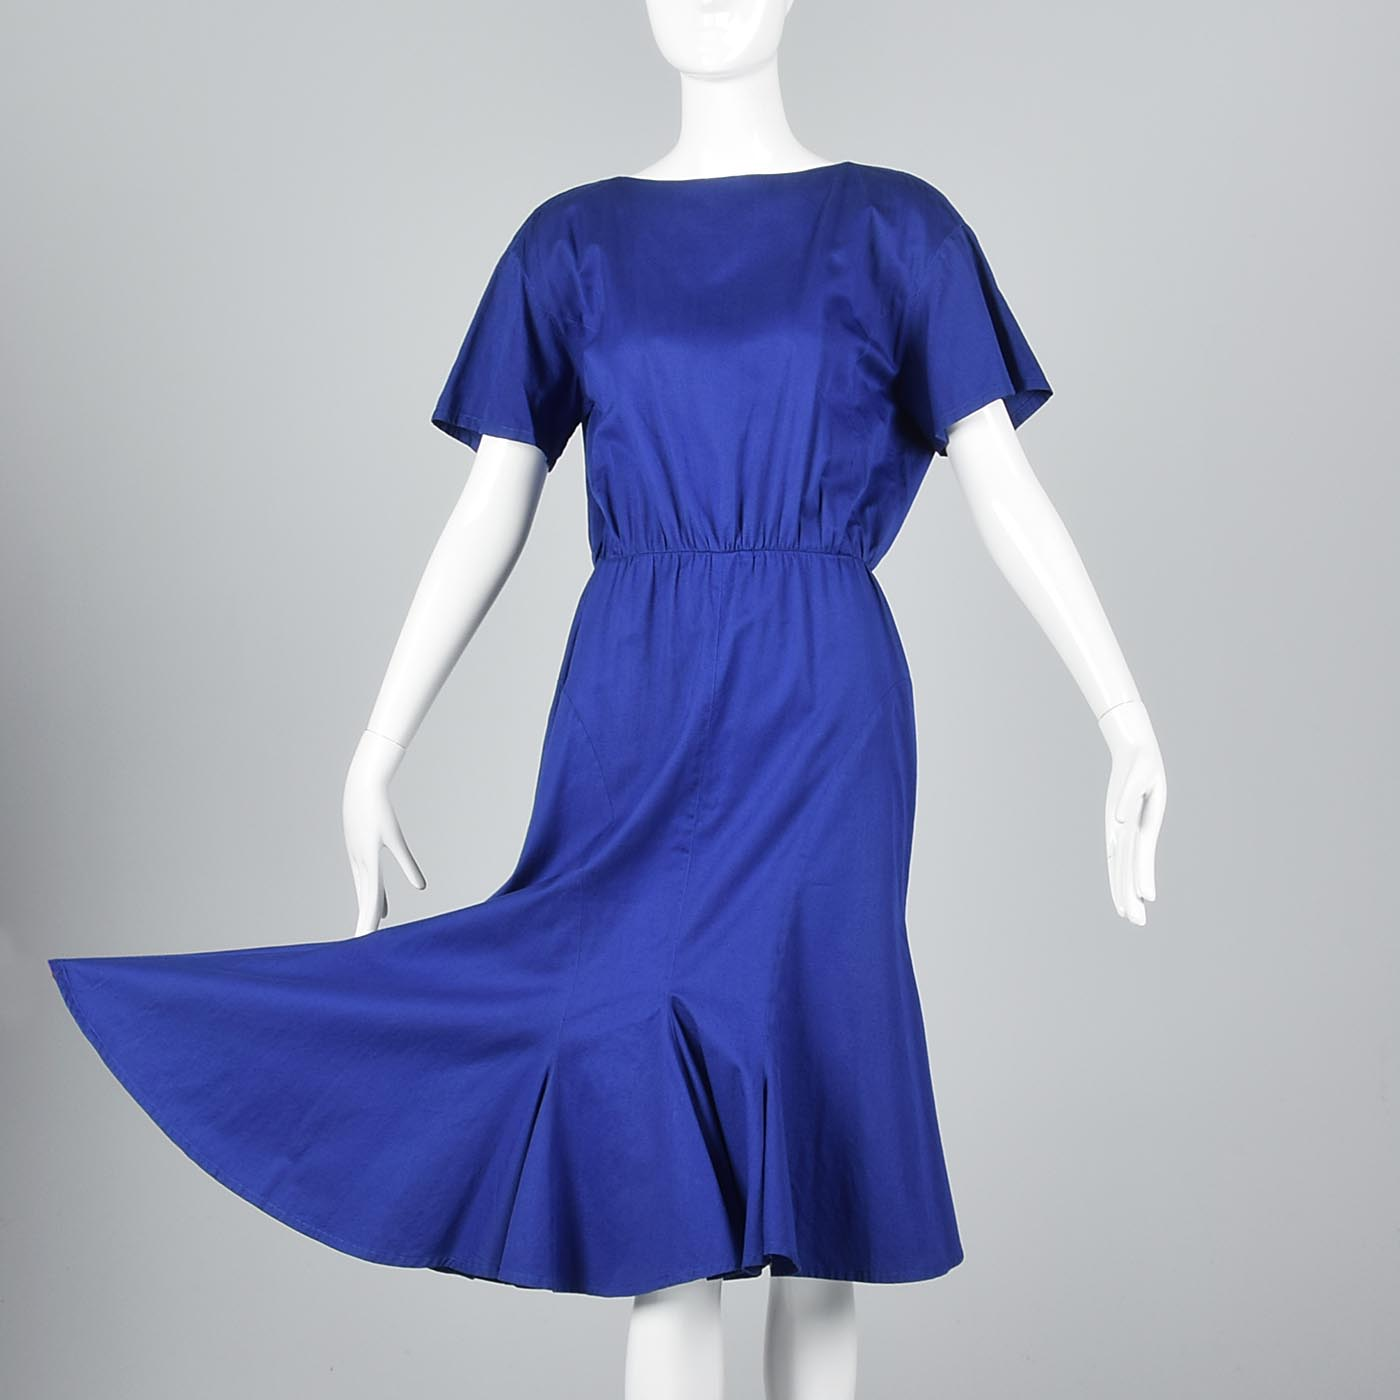 1980s Thierry Mugler Royal Blue Cotton Summer Dress with Asymmetric Hem